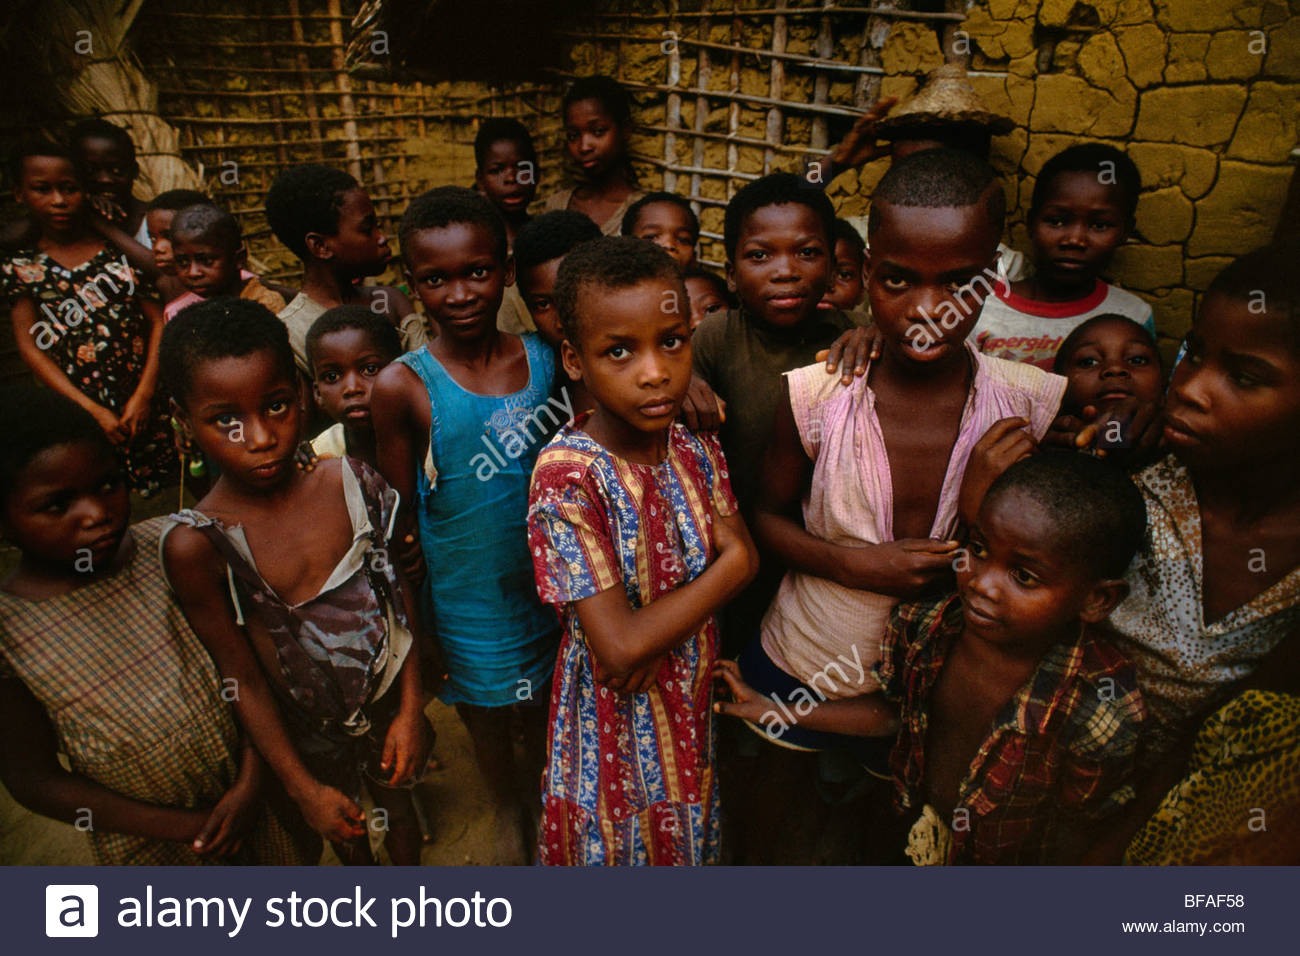 Children, Wamba, Democratic Republic of Congo - Stock Image